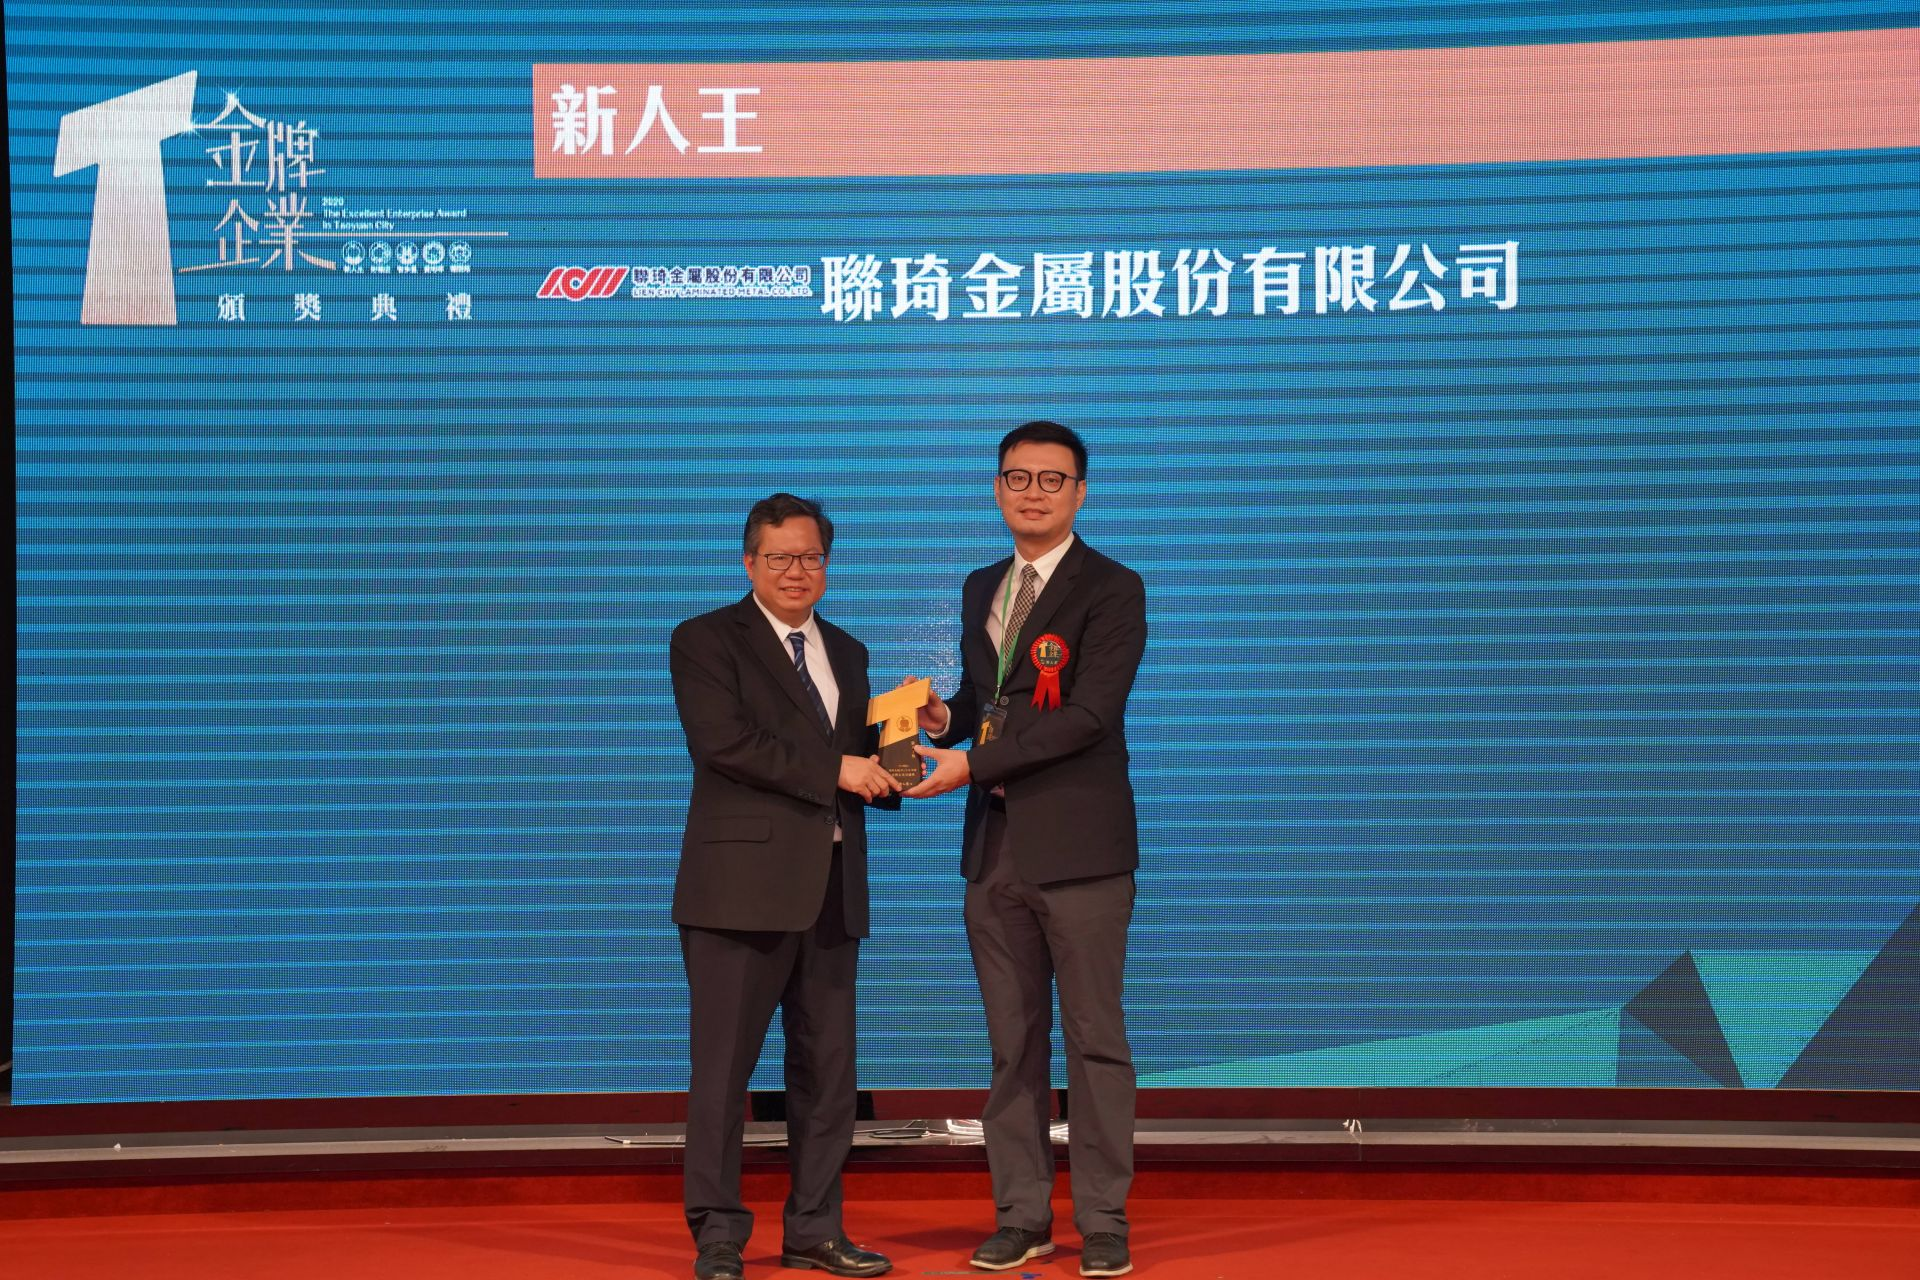 Taoyuan City Mayor and Lien Chy's General Manager Dr. Chuang at the Awards Ceremony